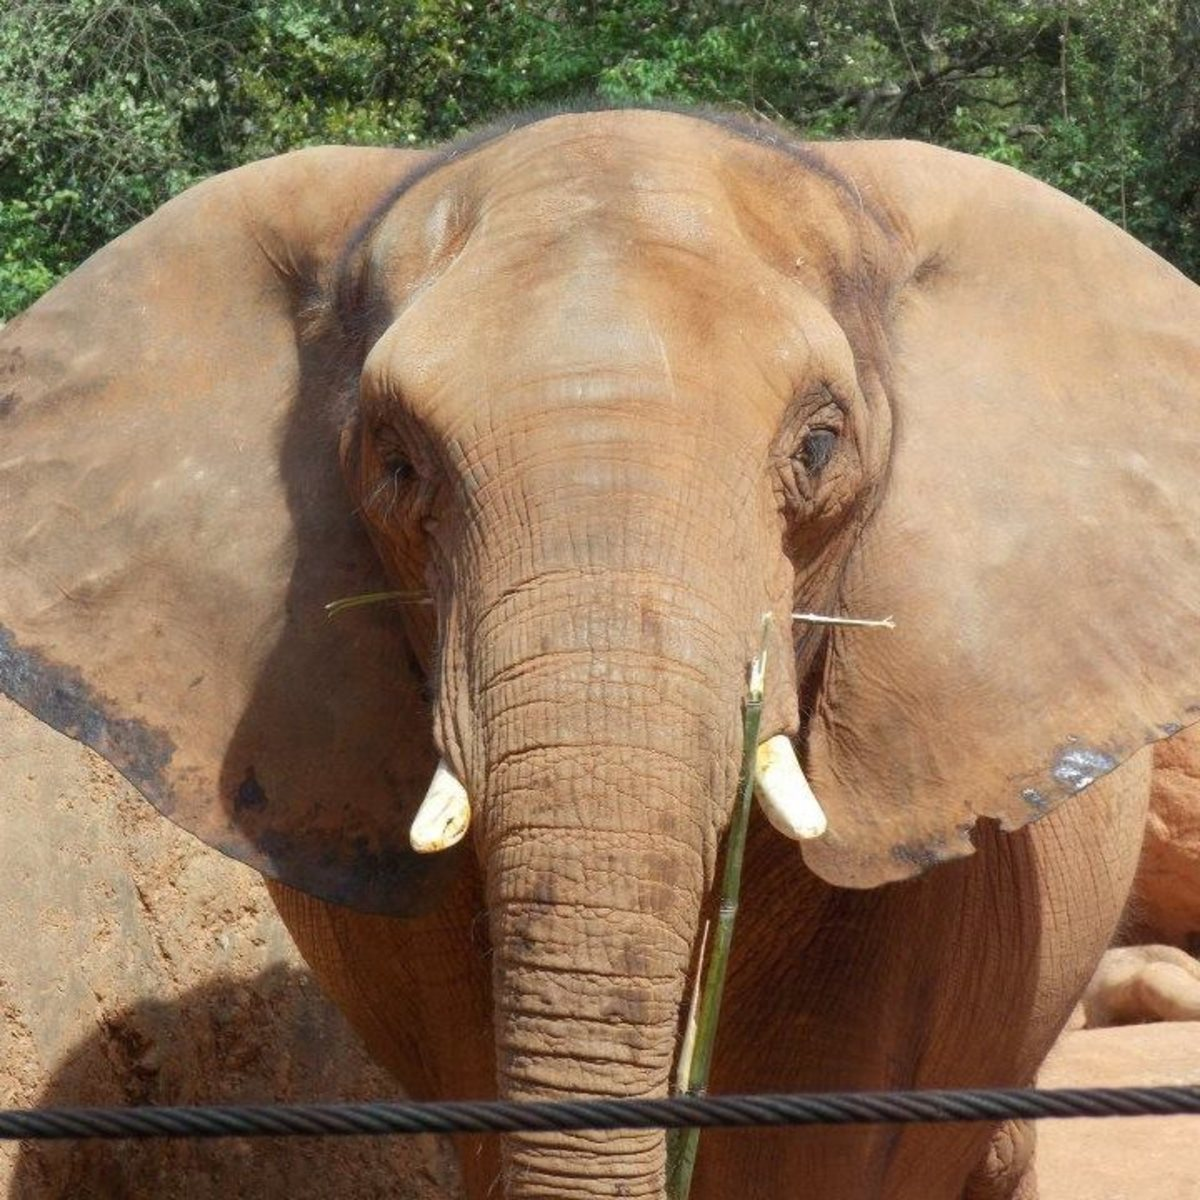 African elephants, like the female pictured here, have much larger ears than their Asian counterparts.